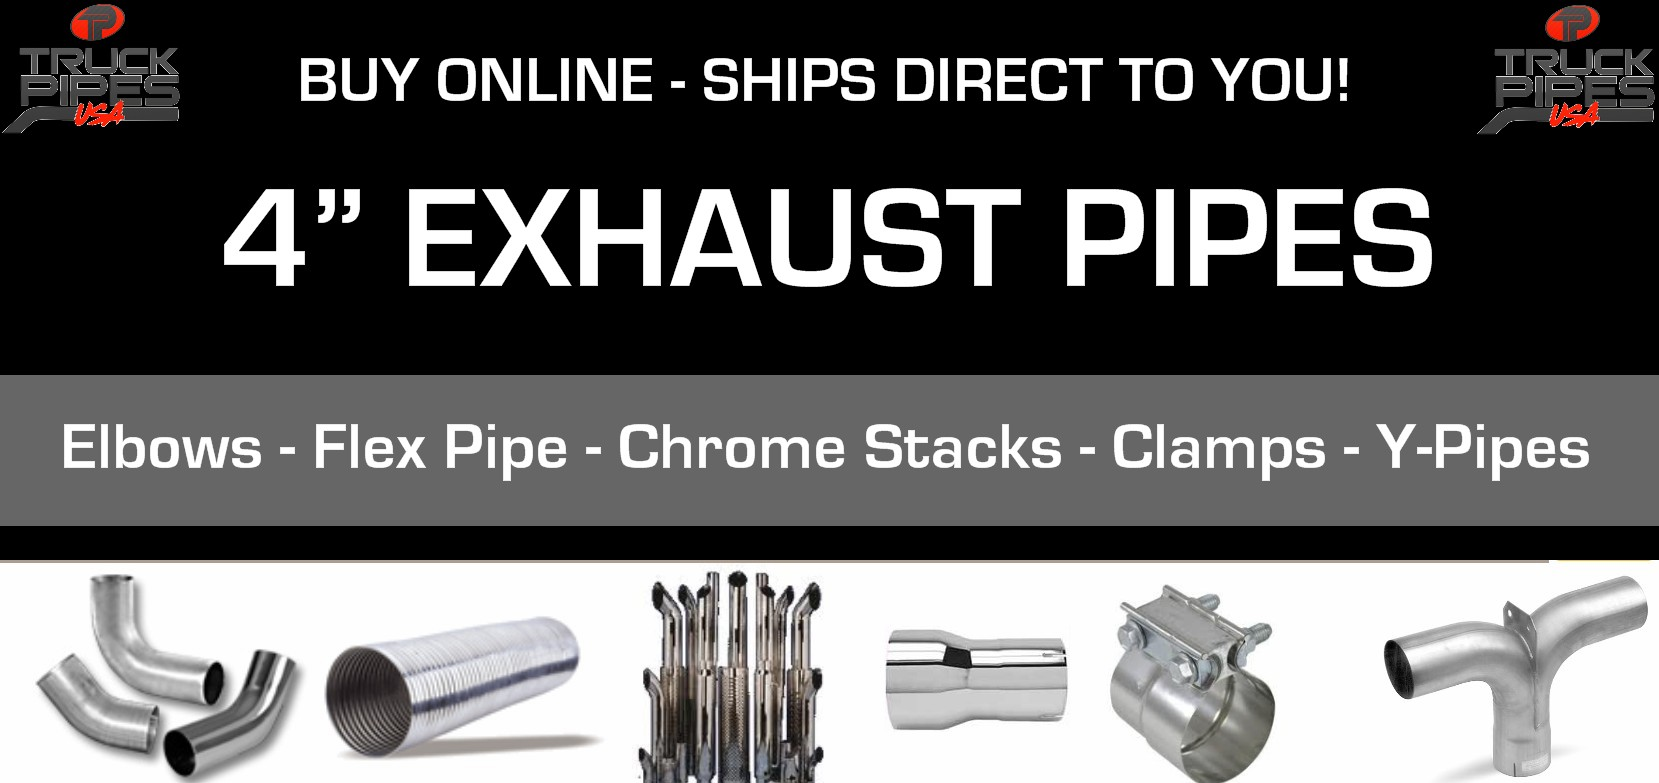 4 exhaust pipes truck exhaust 4